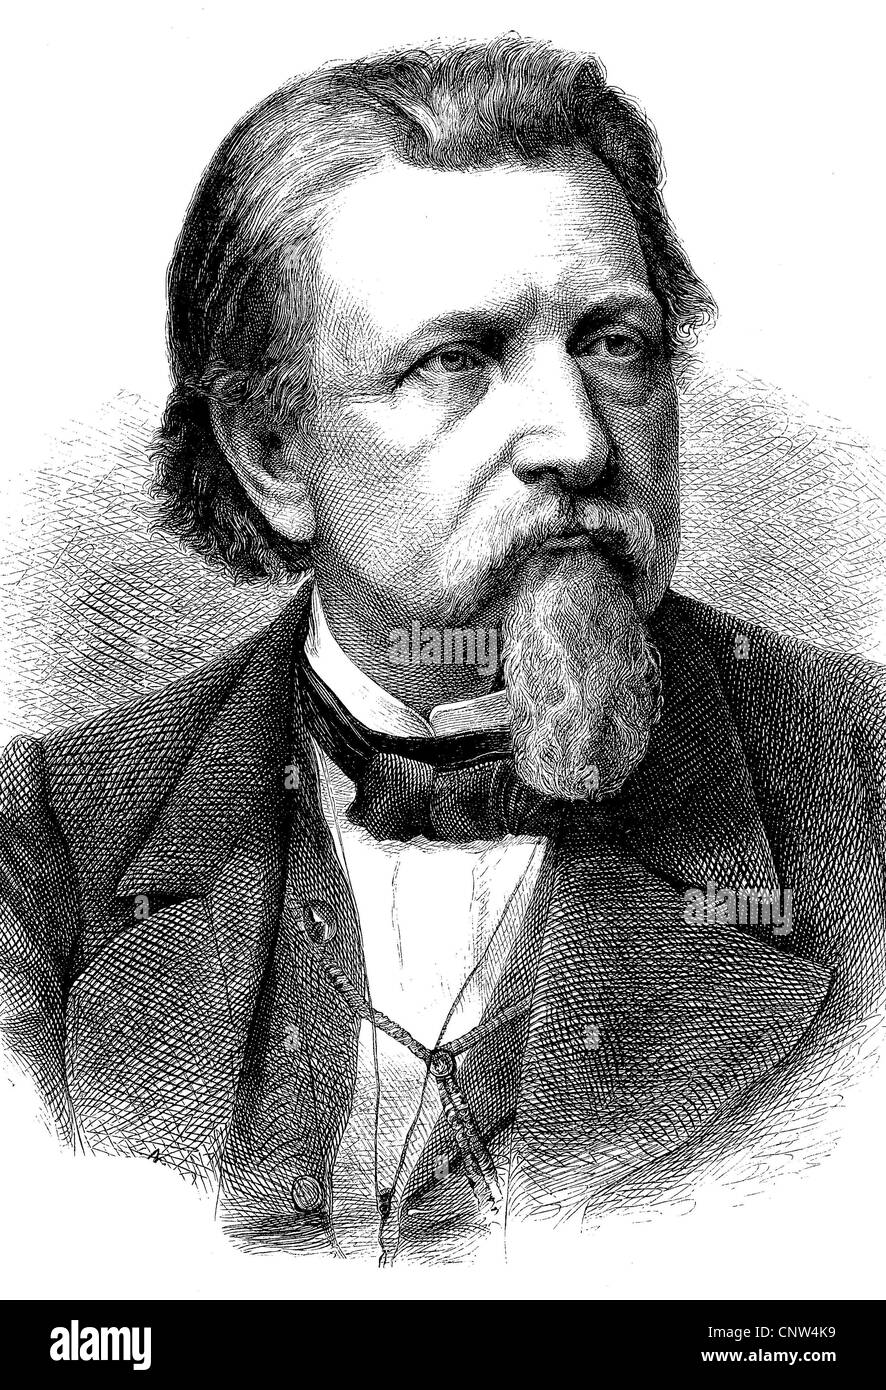 Karl Ferdinand Gutzkow, 1811 - 1878, a German writer, playwright and journalist, one of the leading voices of the Stock Photo